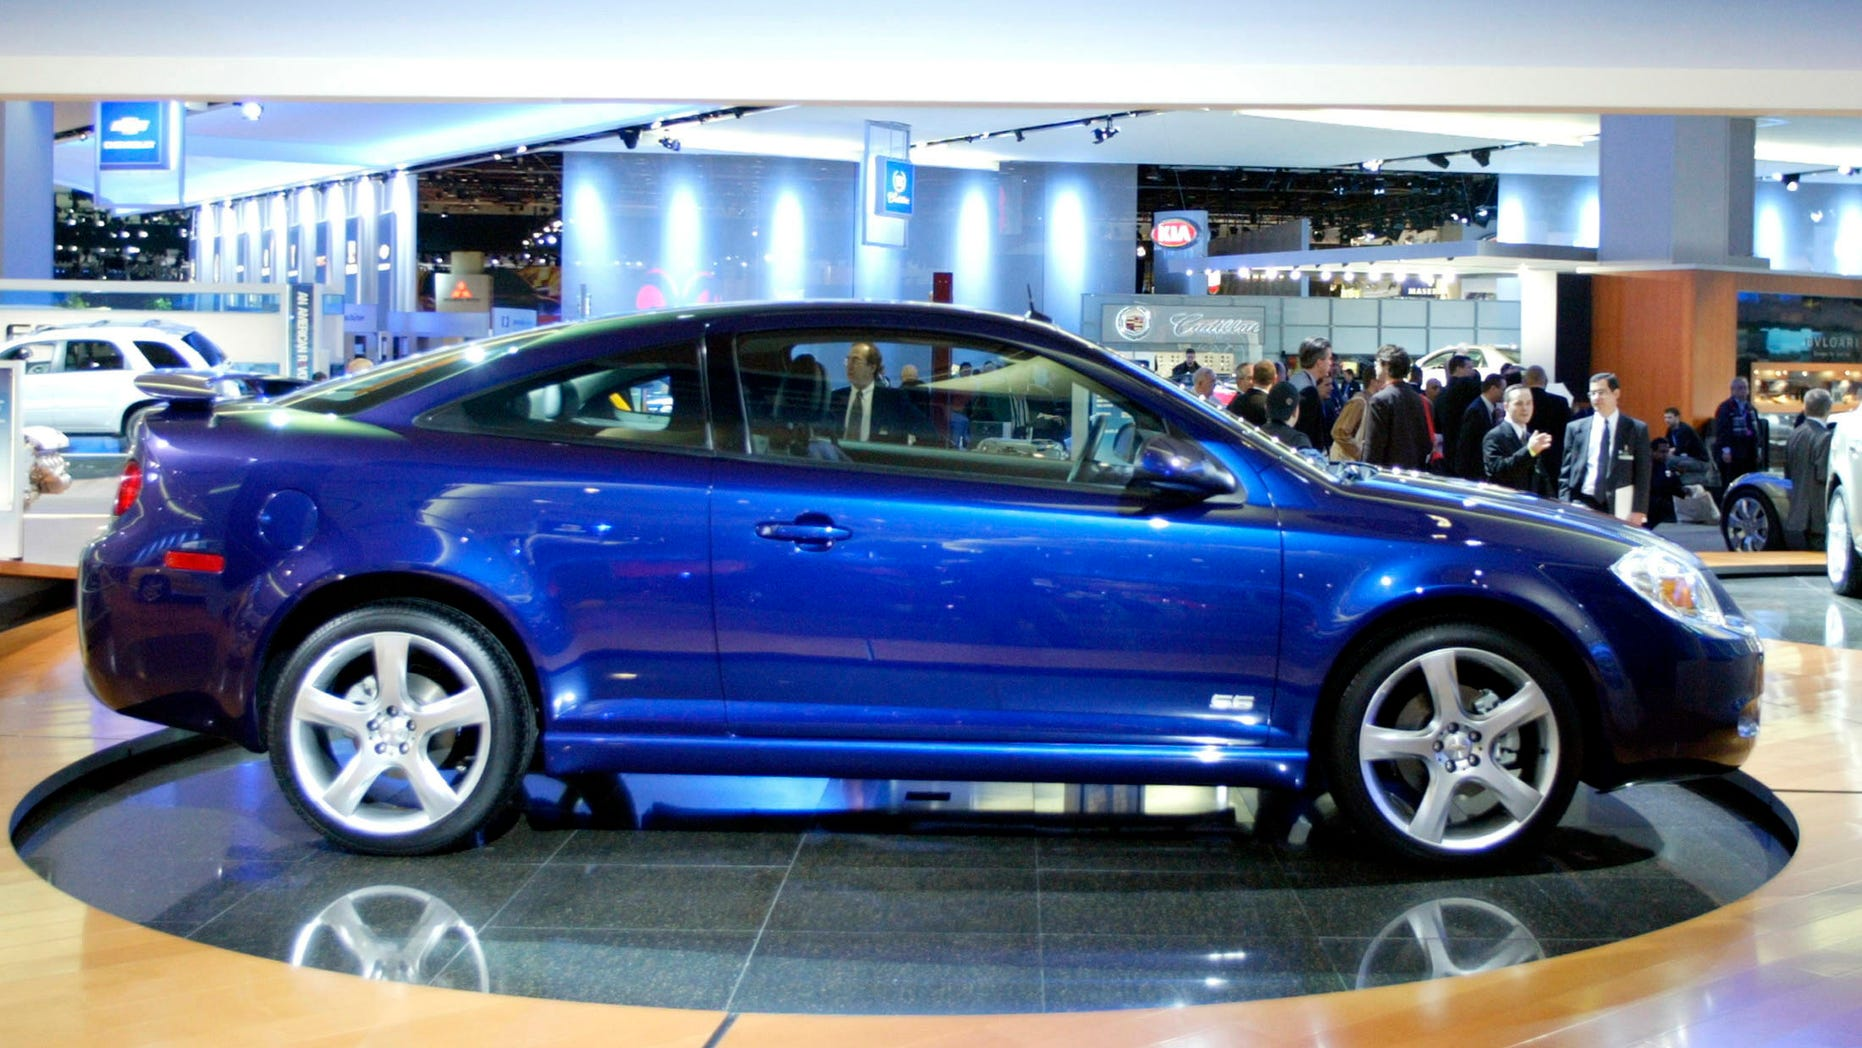 The 2005 Chevrolet Cobalt SS is displayed on the floor of the North American International Auto Show in Detroit Michigan, in this file photograph taken January 5, 2004.